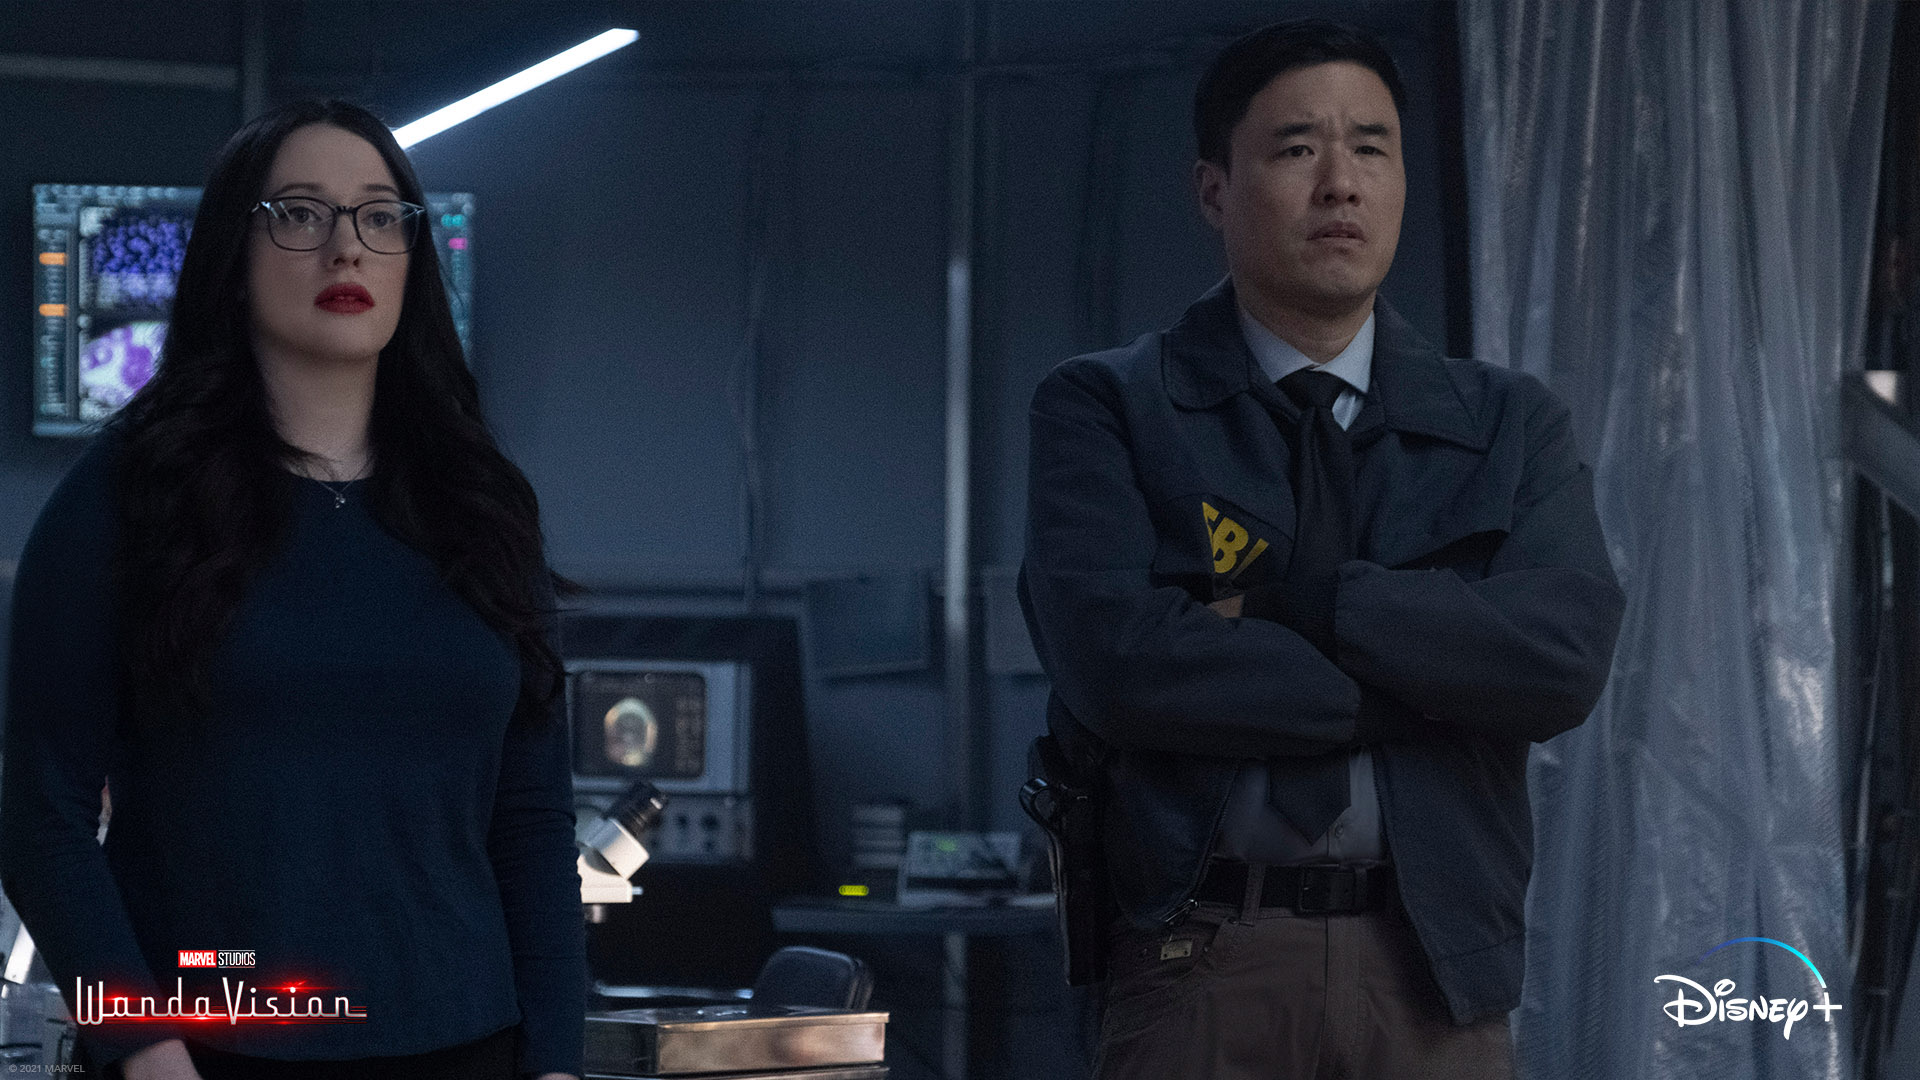 Doctor Darcy Lewis and Agent Woo in Episode 4 of WandaVision